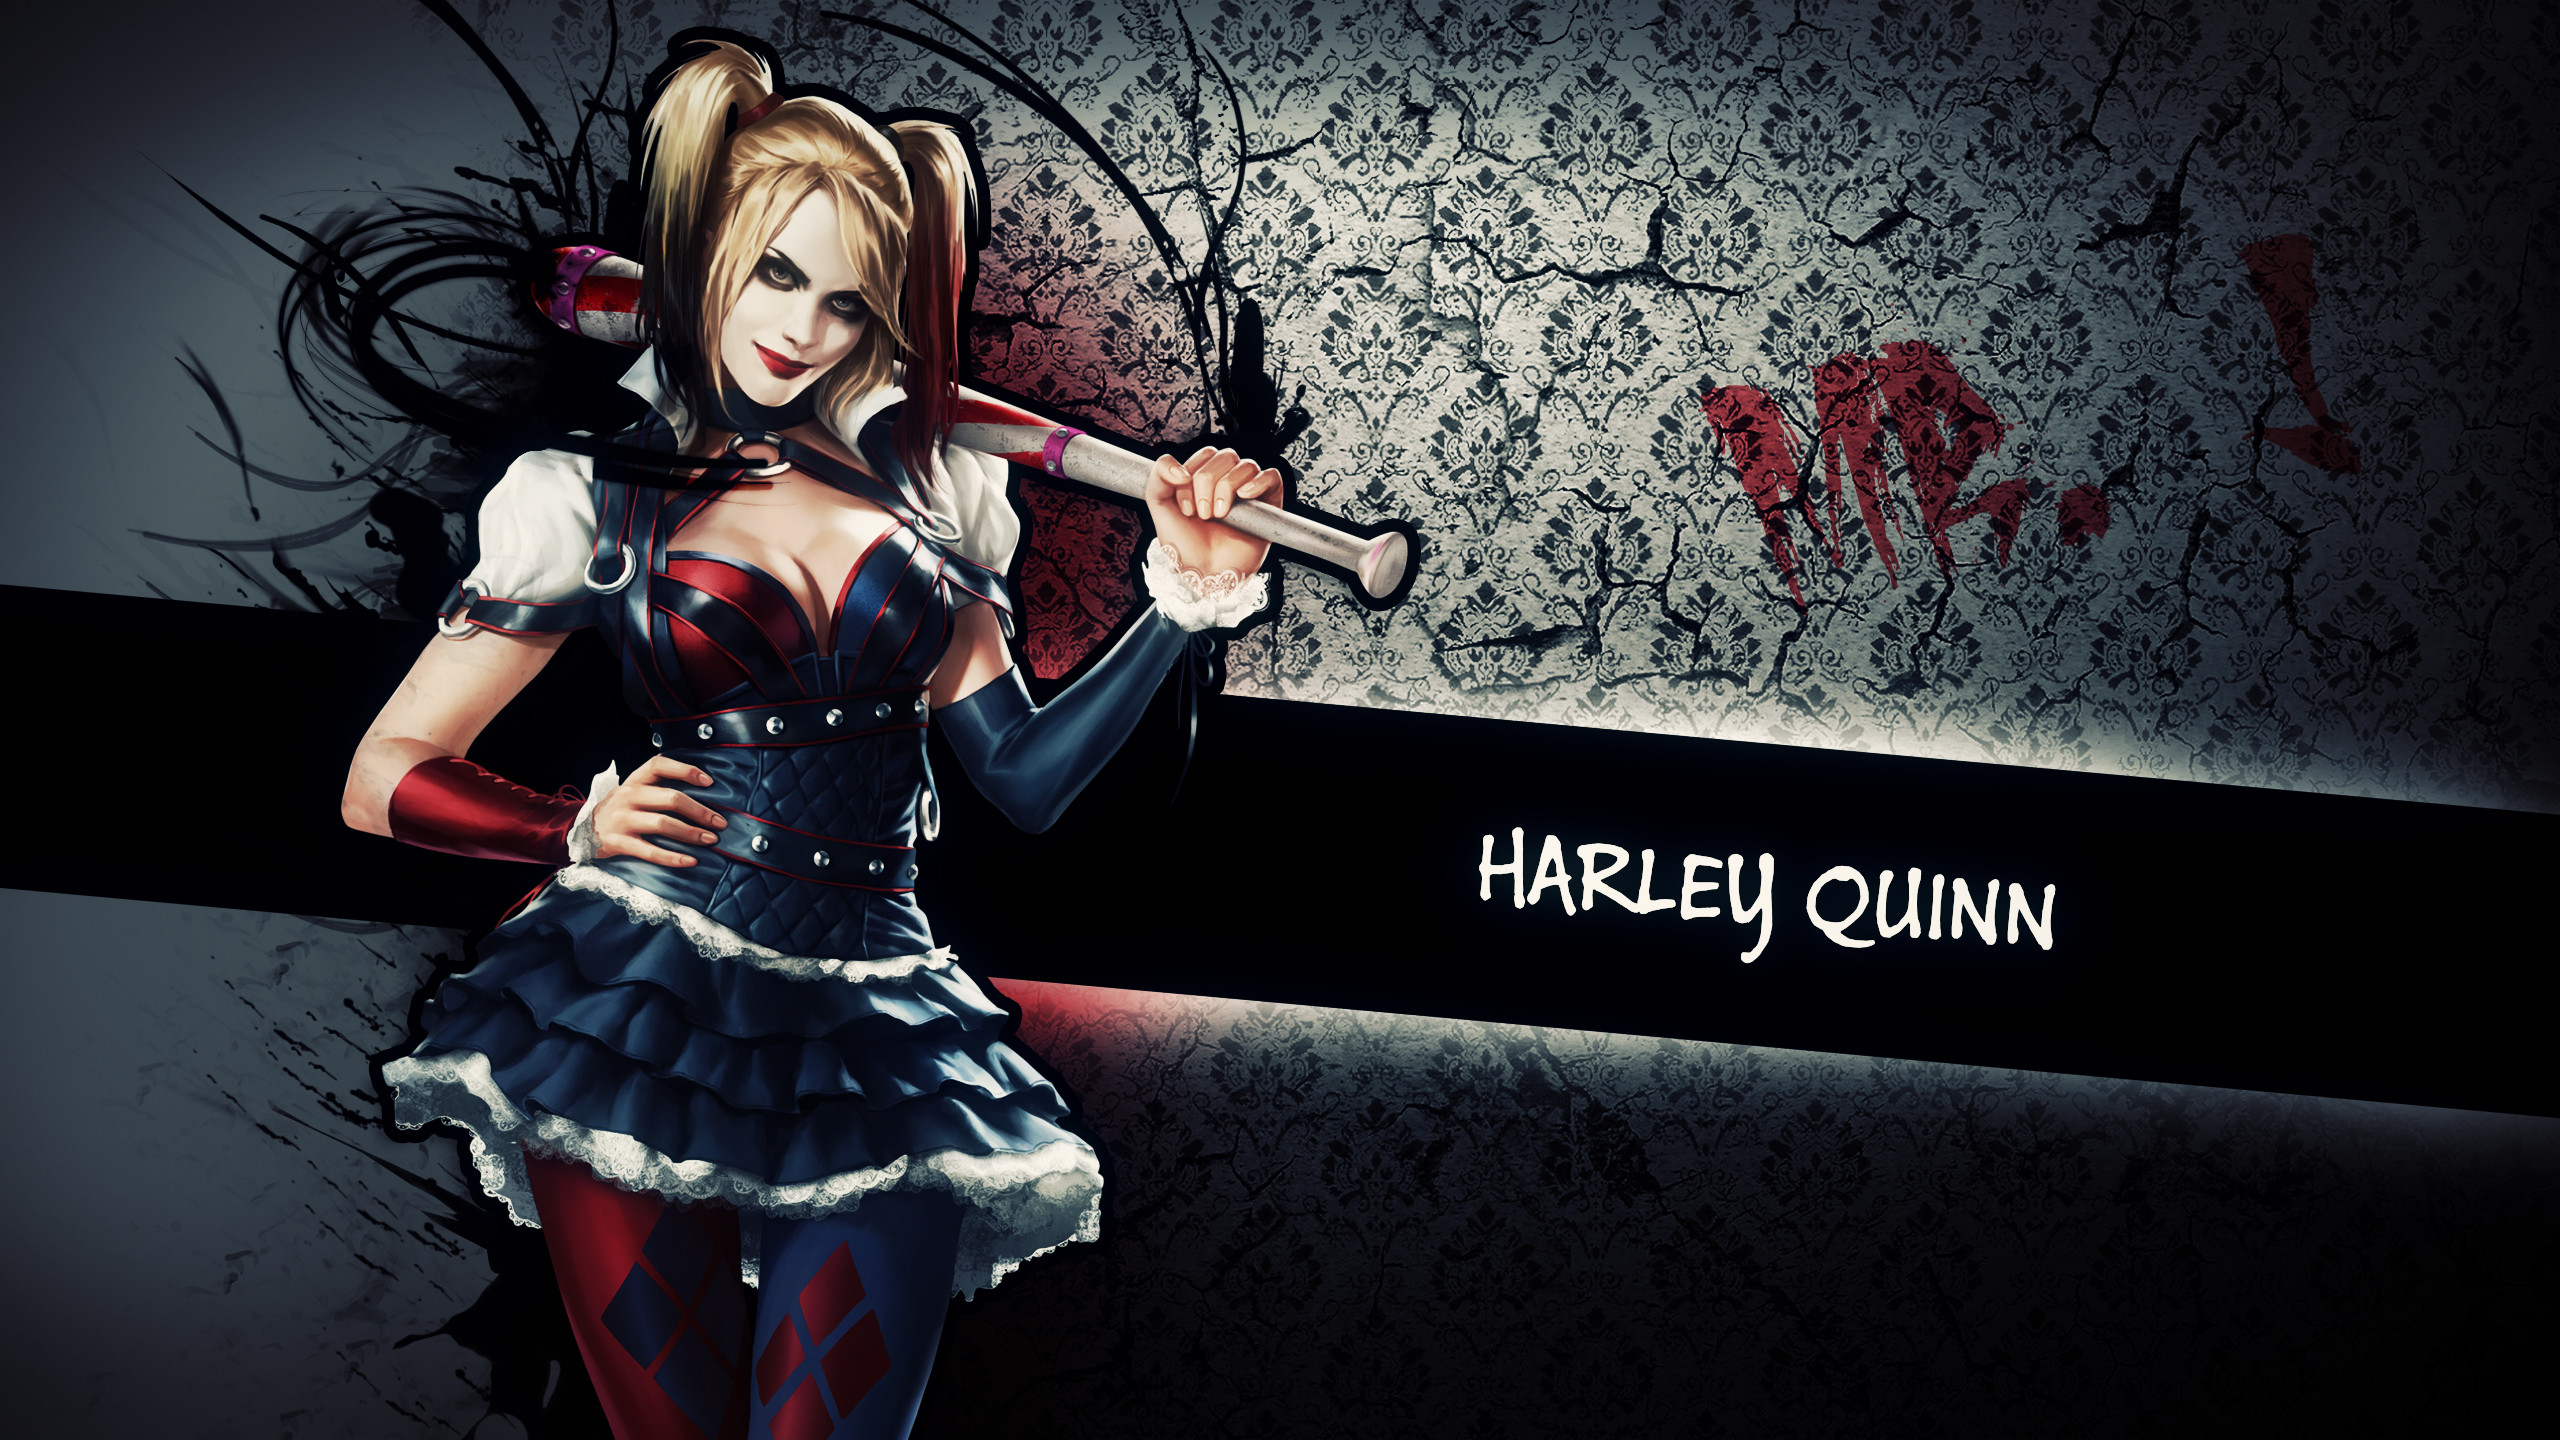 2560x1440 Suicide Squad Latest Wallpapers · Harley Quinn Desktop Wallpaper 04927